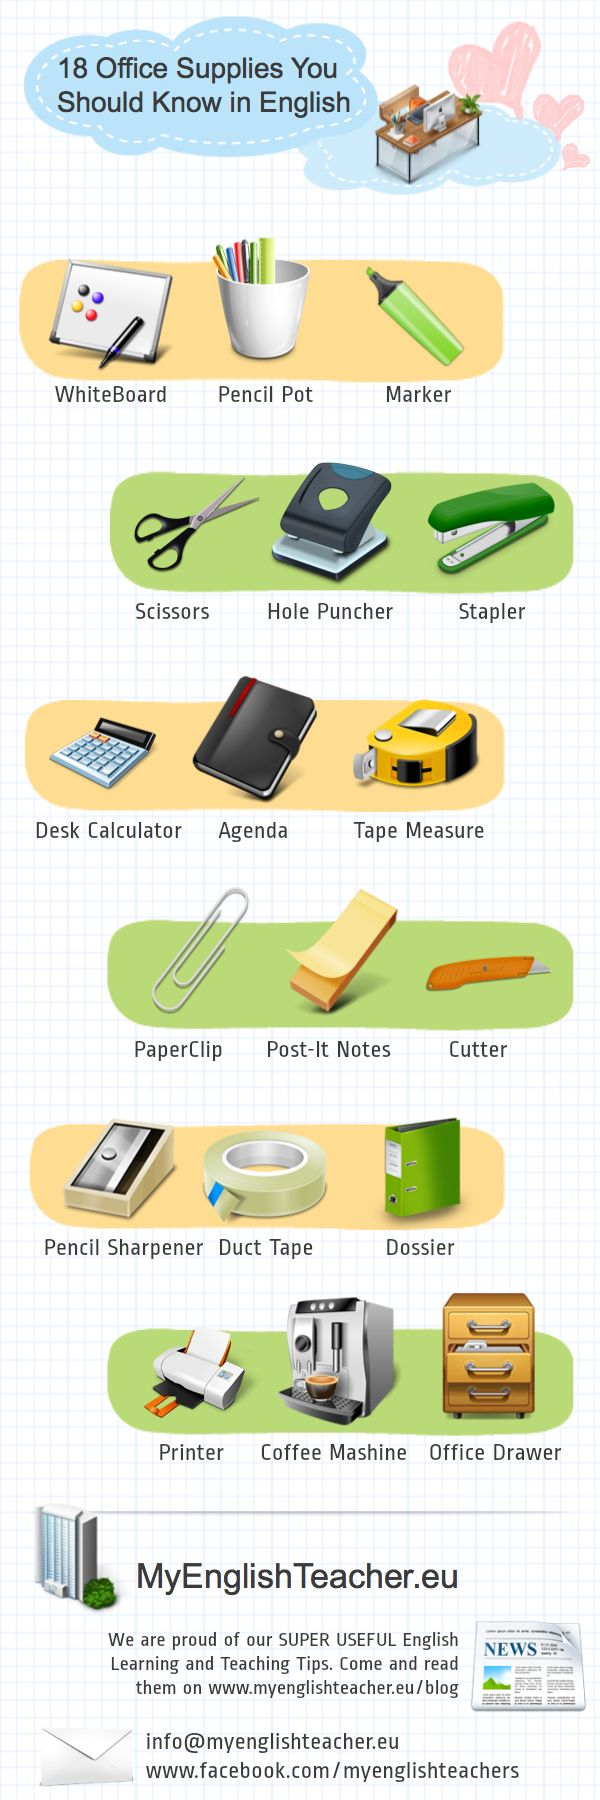 Office Supplies in a HUGE Image. Learn English words easier and faster than before. Discover the new words and learn them immediately. Read more...